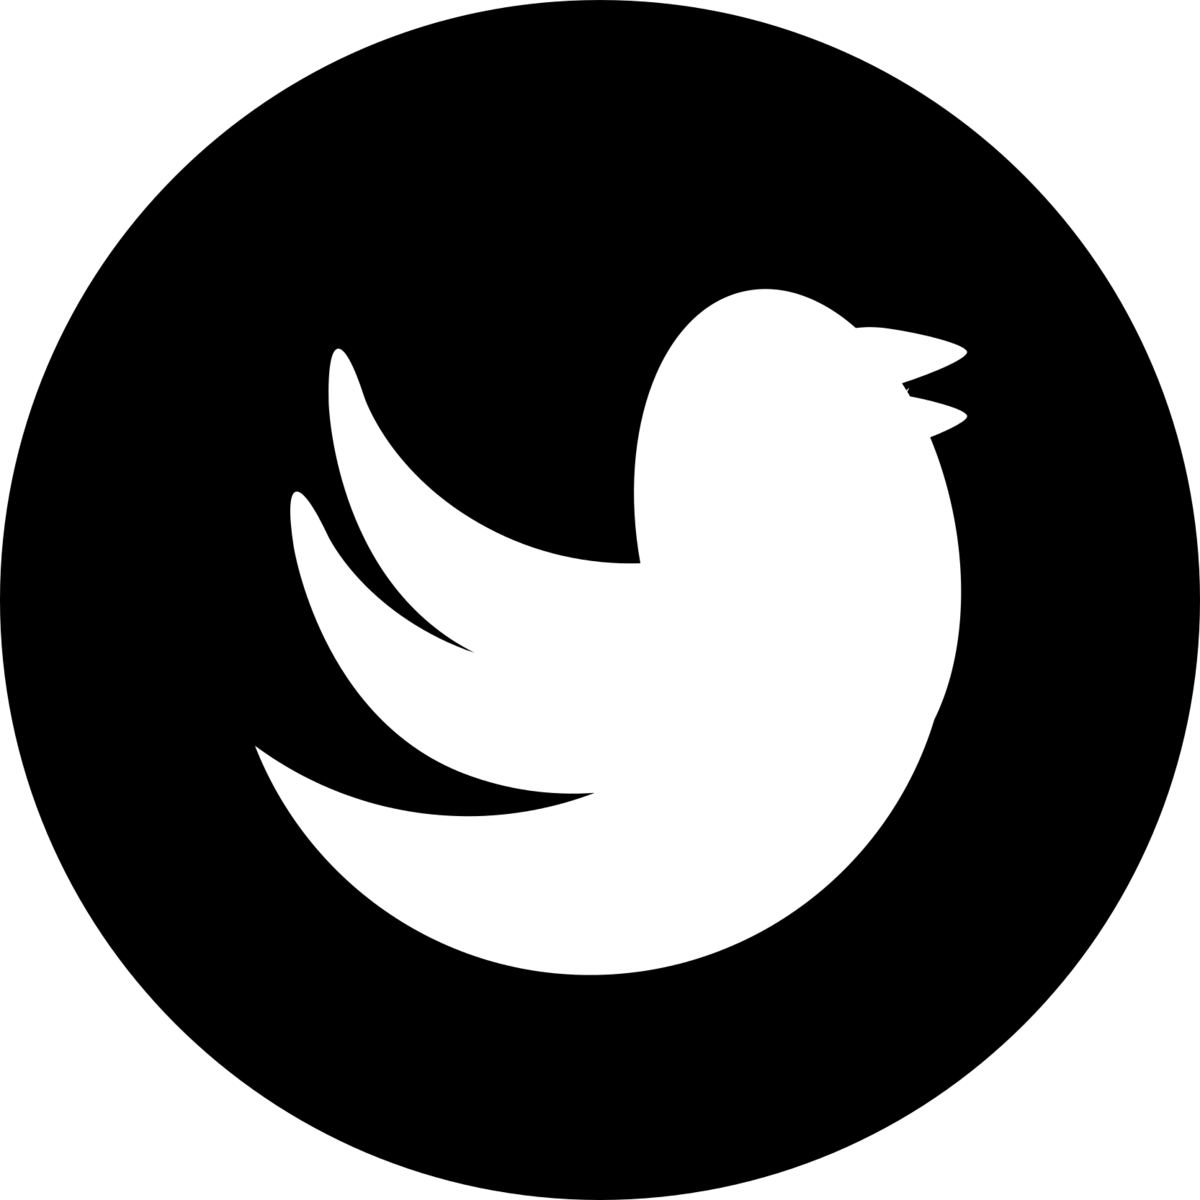 icon_twitter_white.png